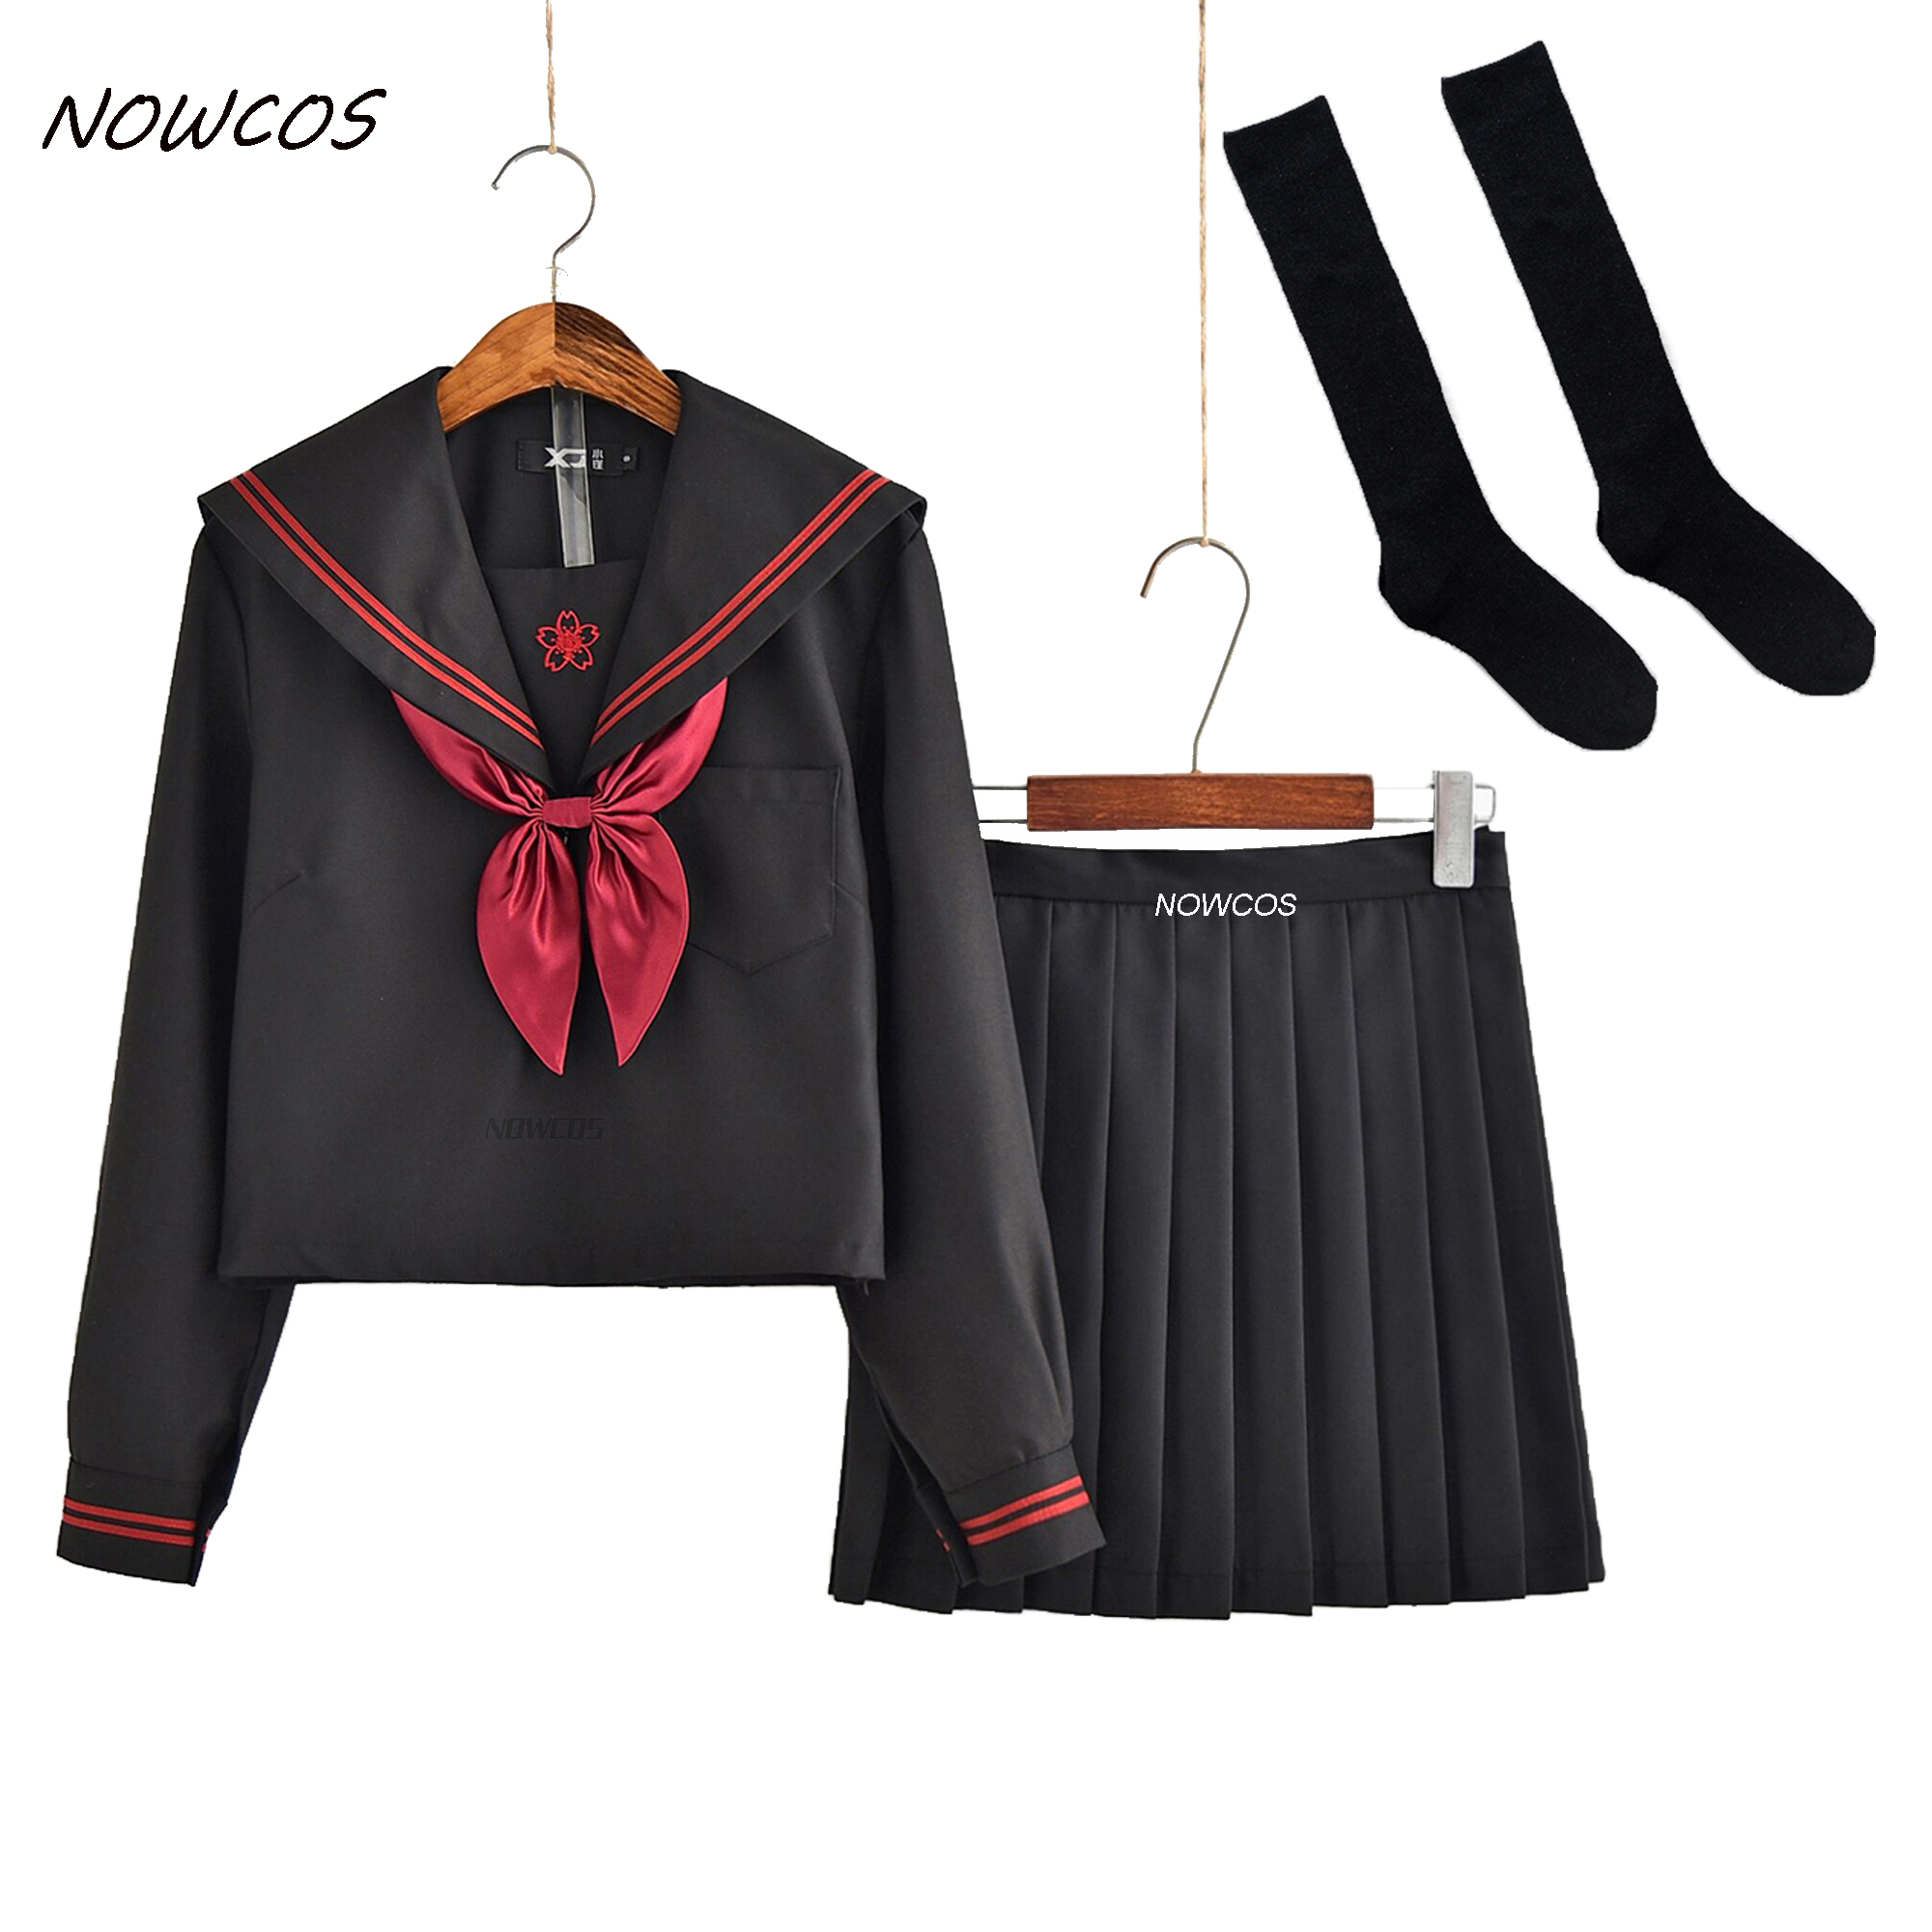 Dark Demon Japanese JK Sets School Uniform Girls Sakura Embroideried Autumn High School Women Novelty Sailor Suits Uniforms XXL